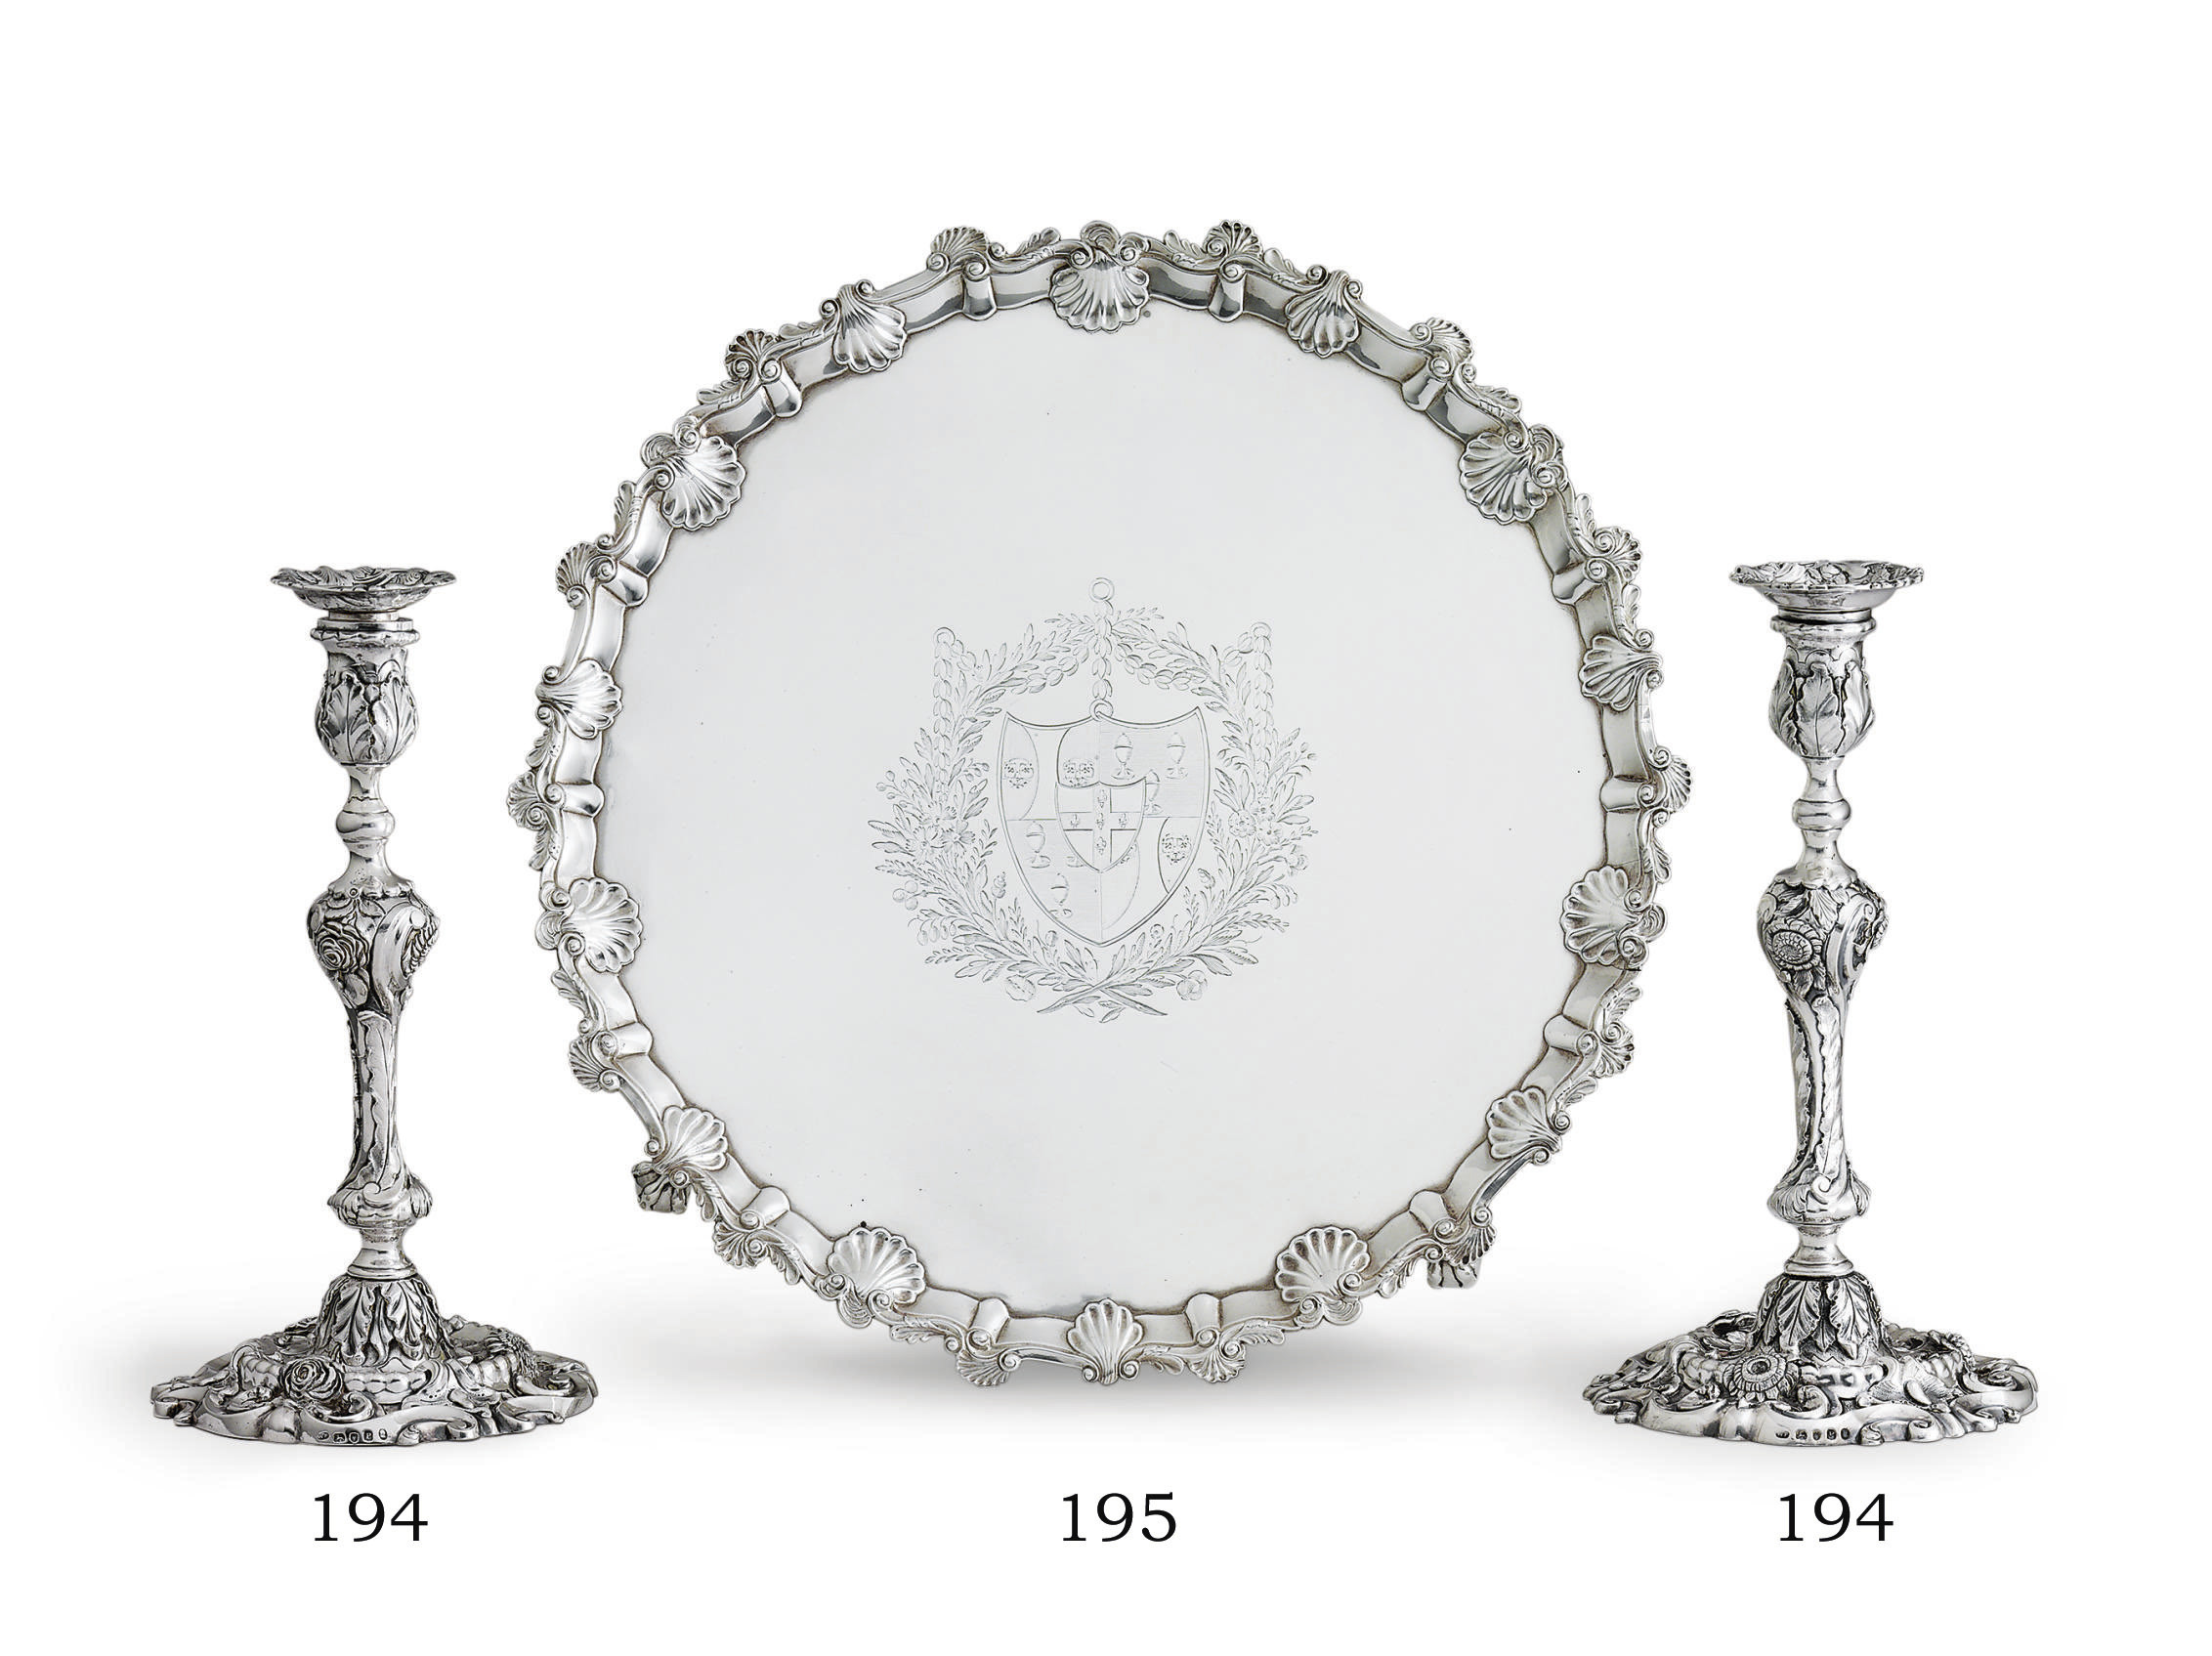 A PAIR OF REGENCY SILVER CANDLESTICKS